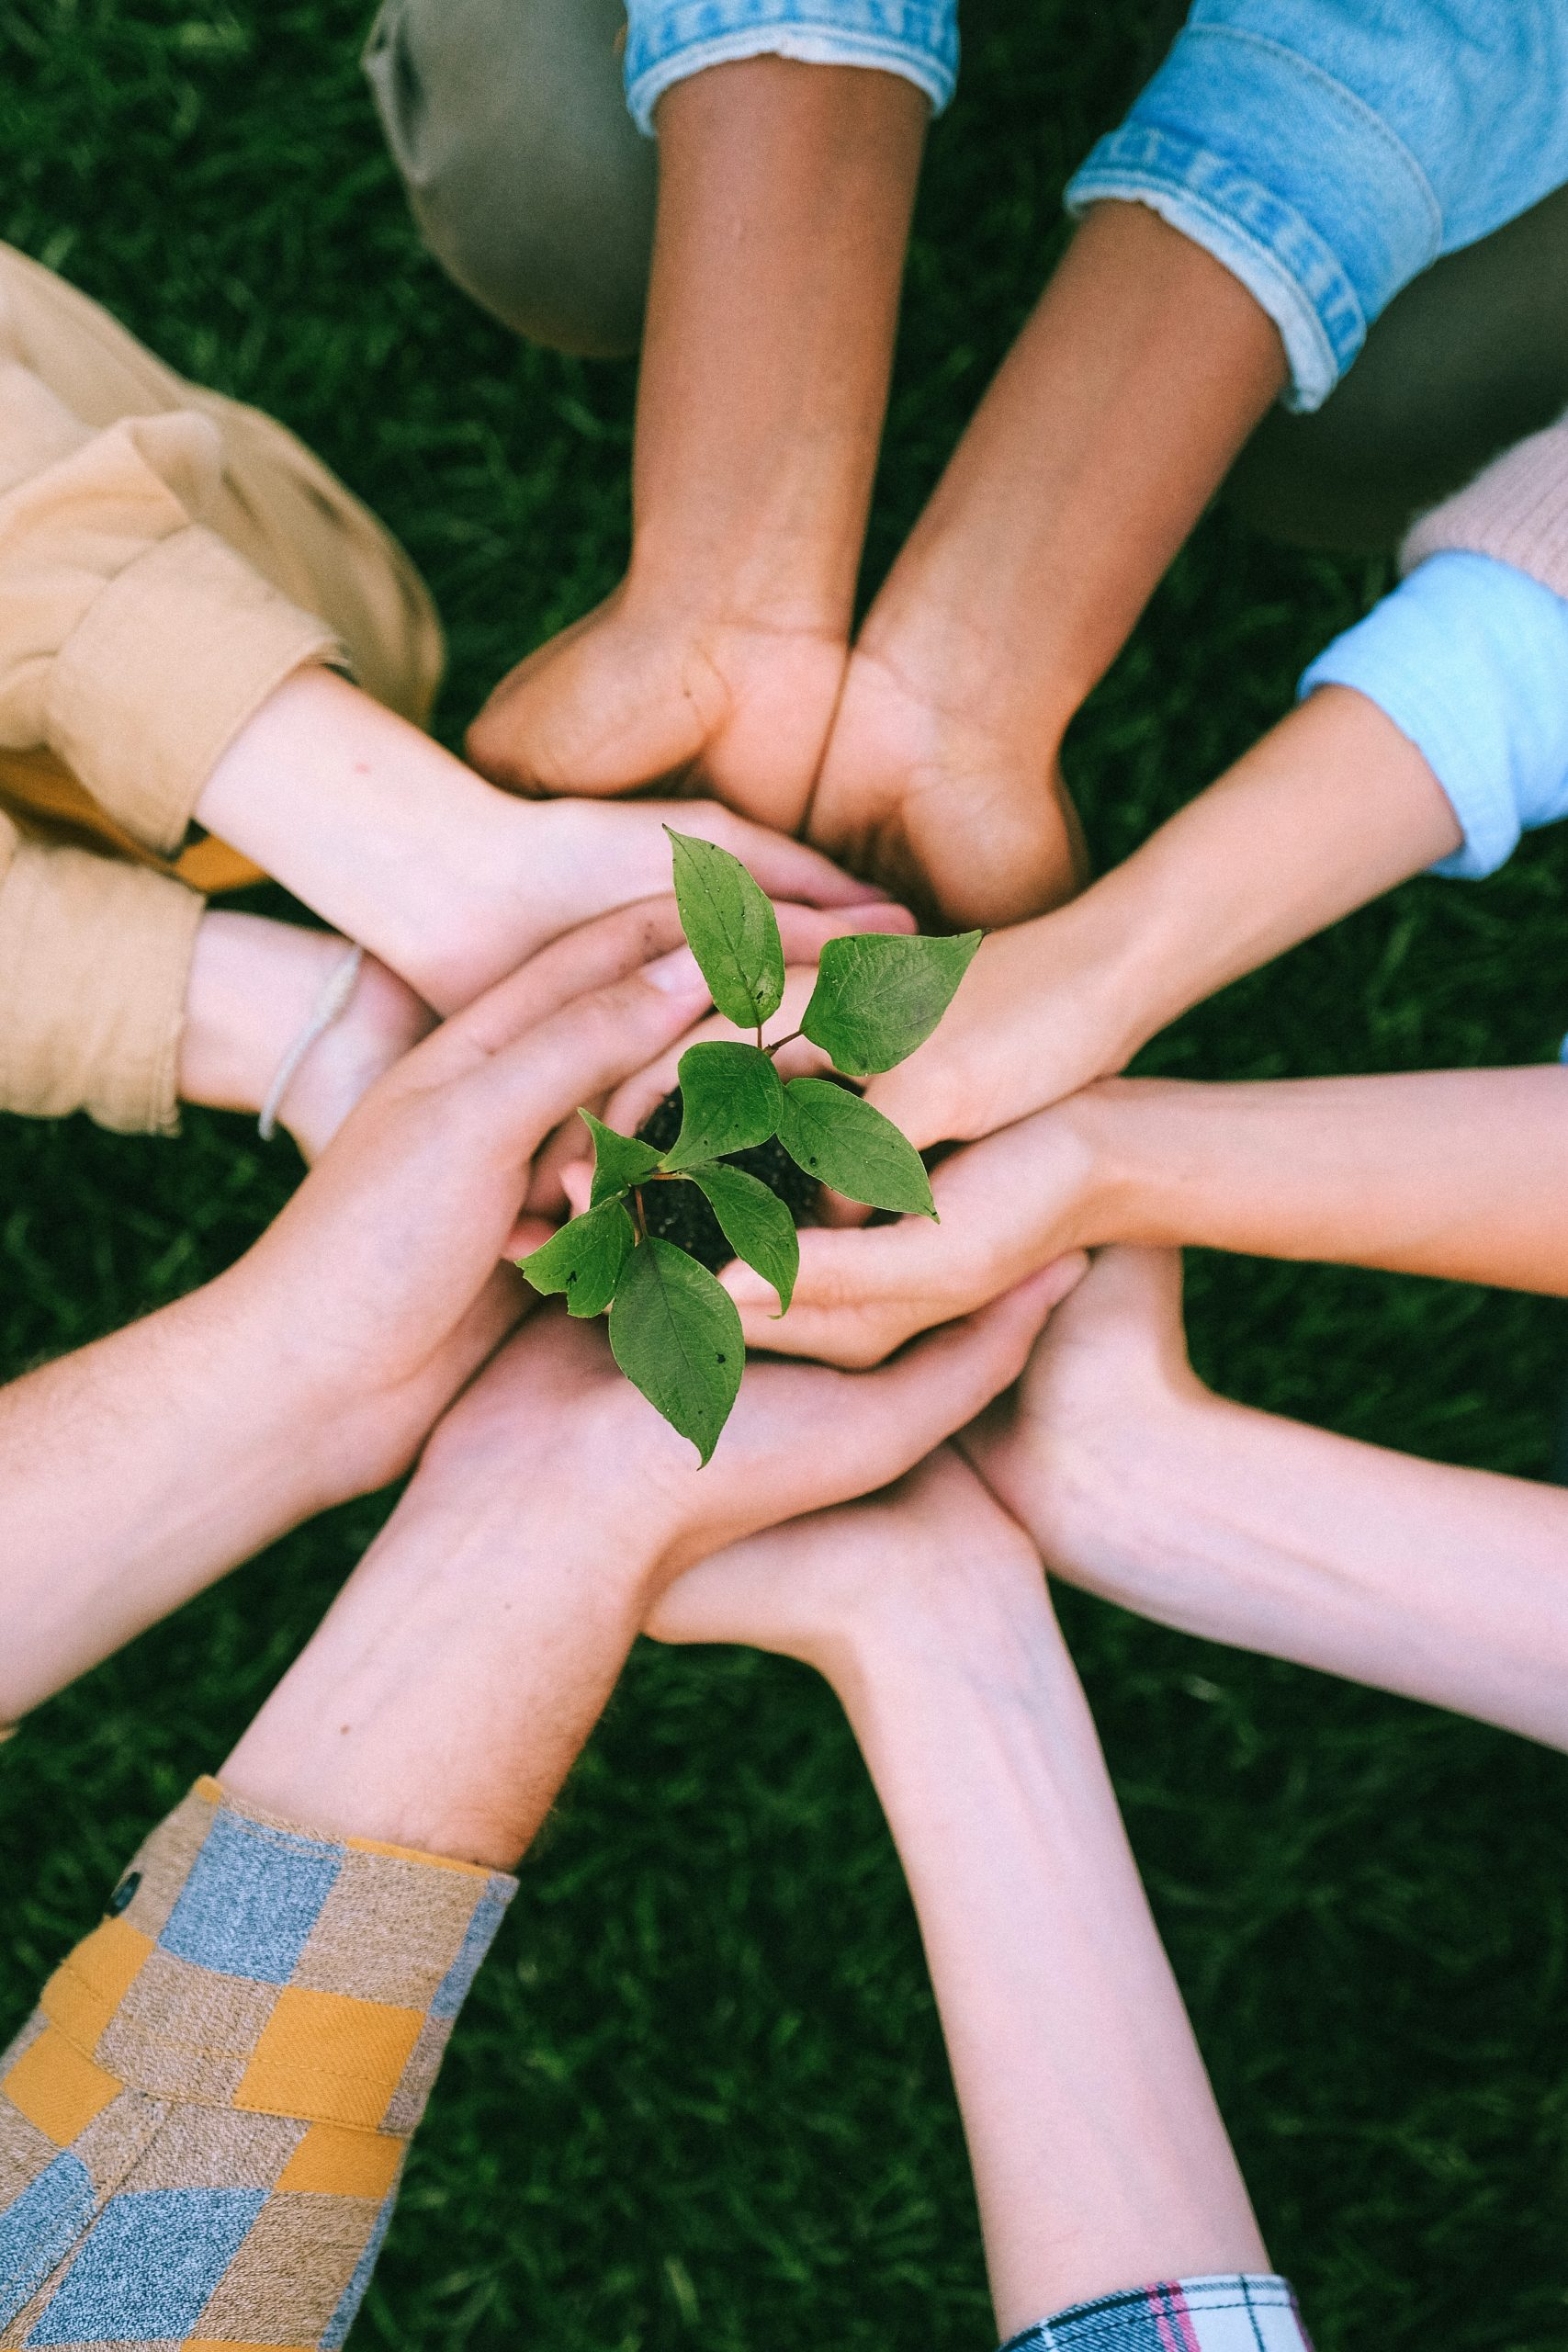 Group of hands all cupped under each other meeting in the centre of a circle, holding a small budding plant with green leaves